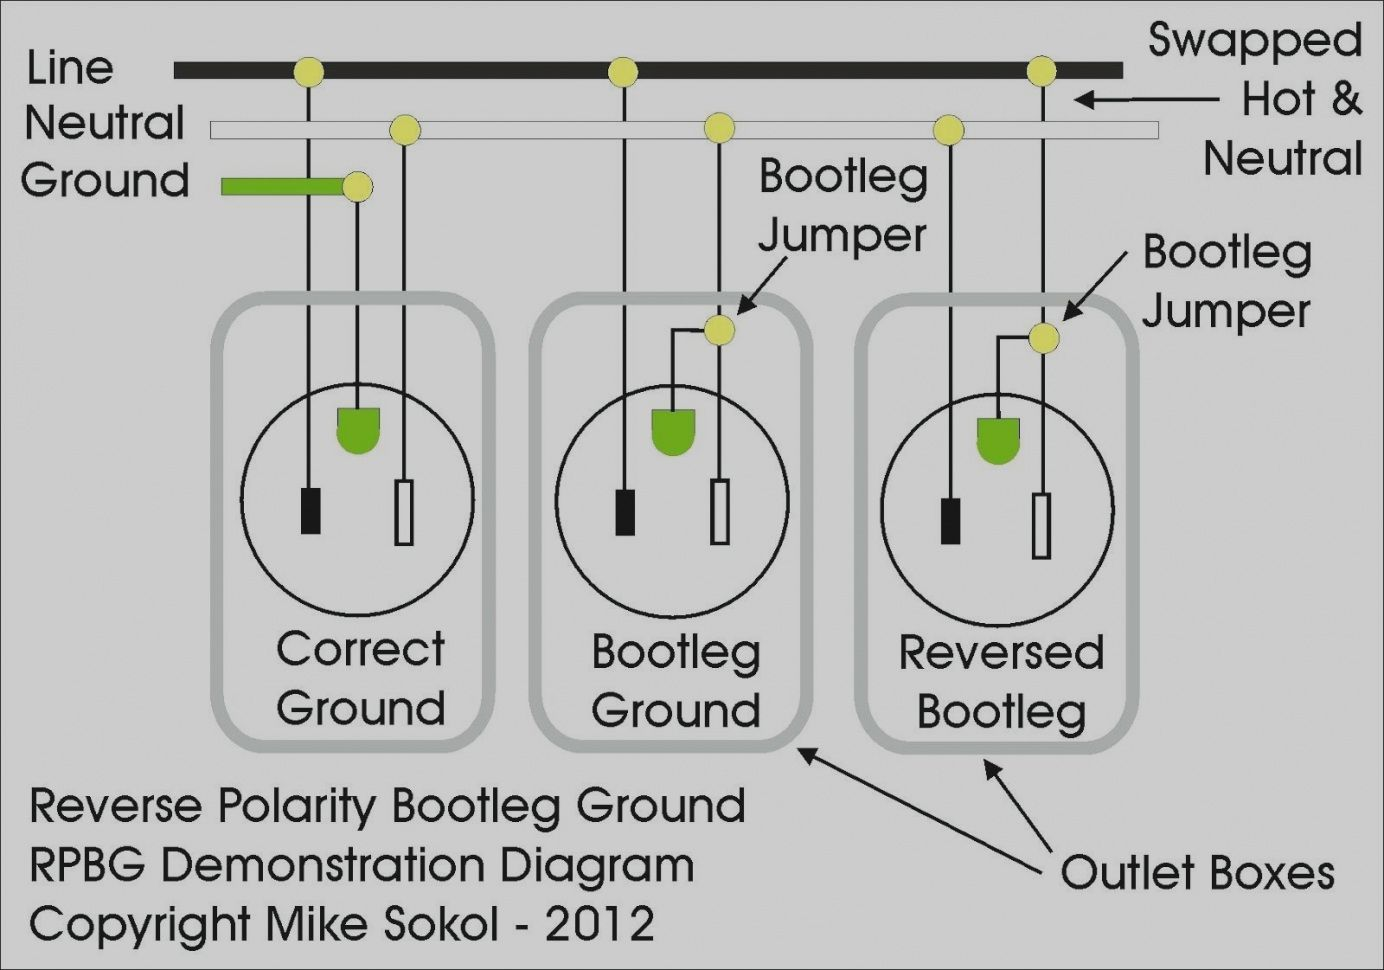 11 Wiring Diagram For 220 Volt Dryer Outlet References